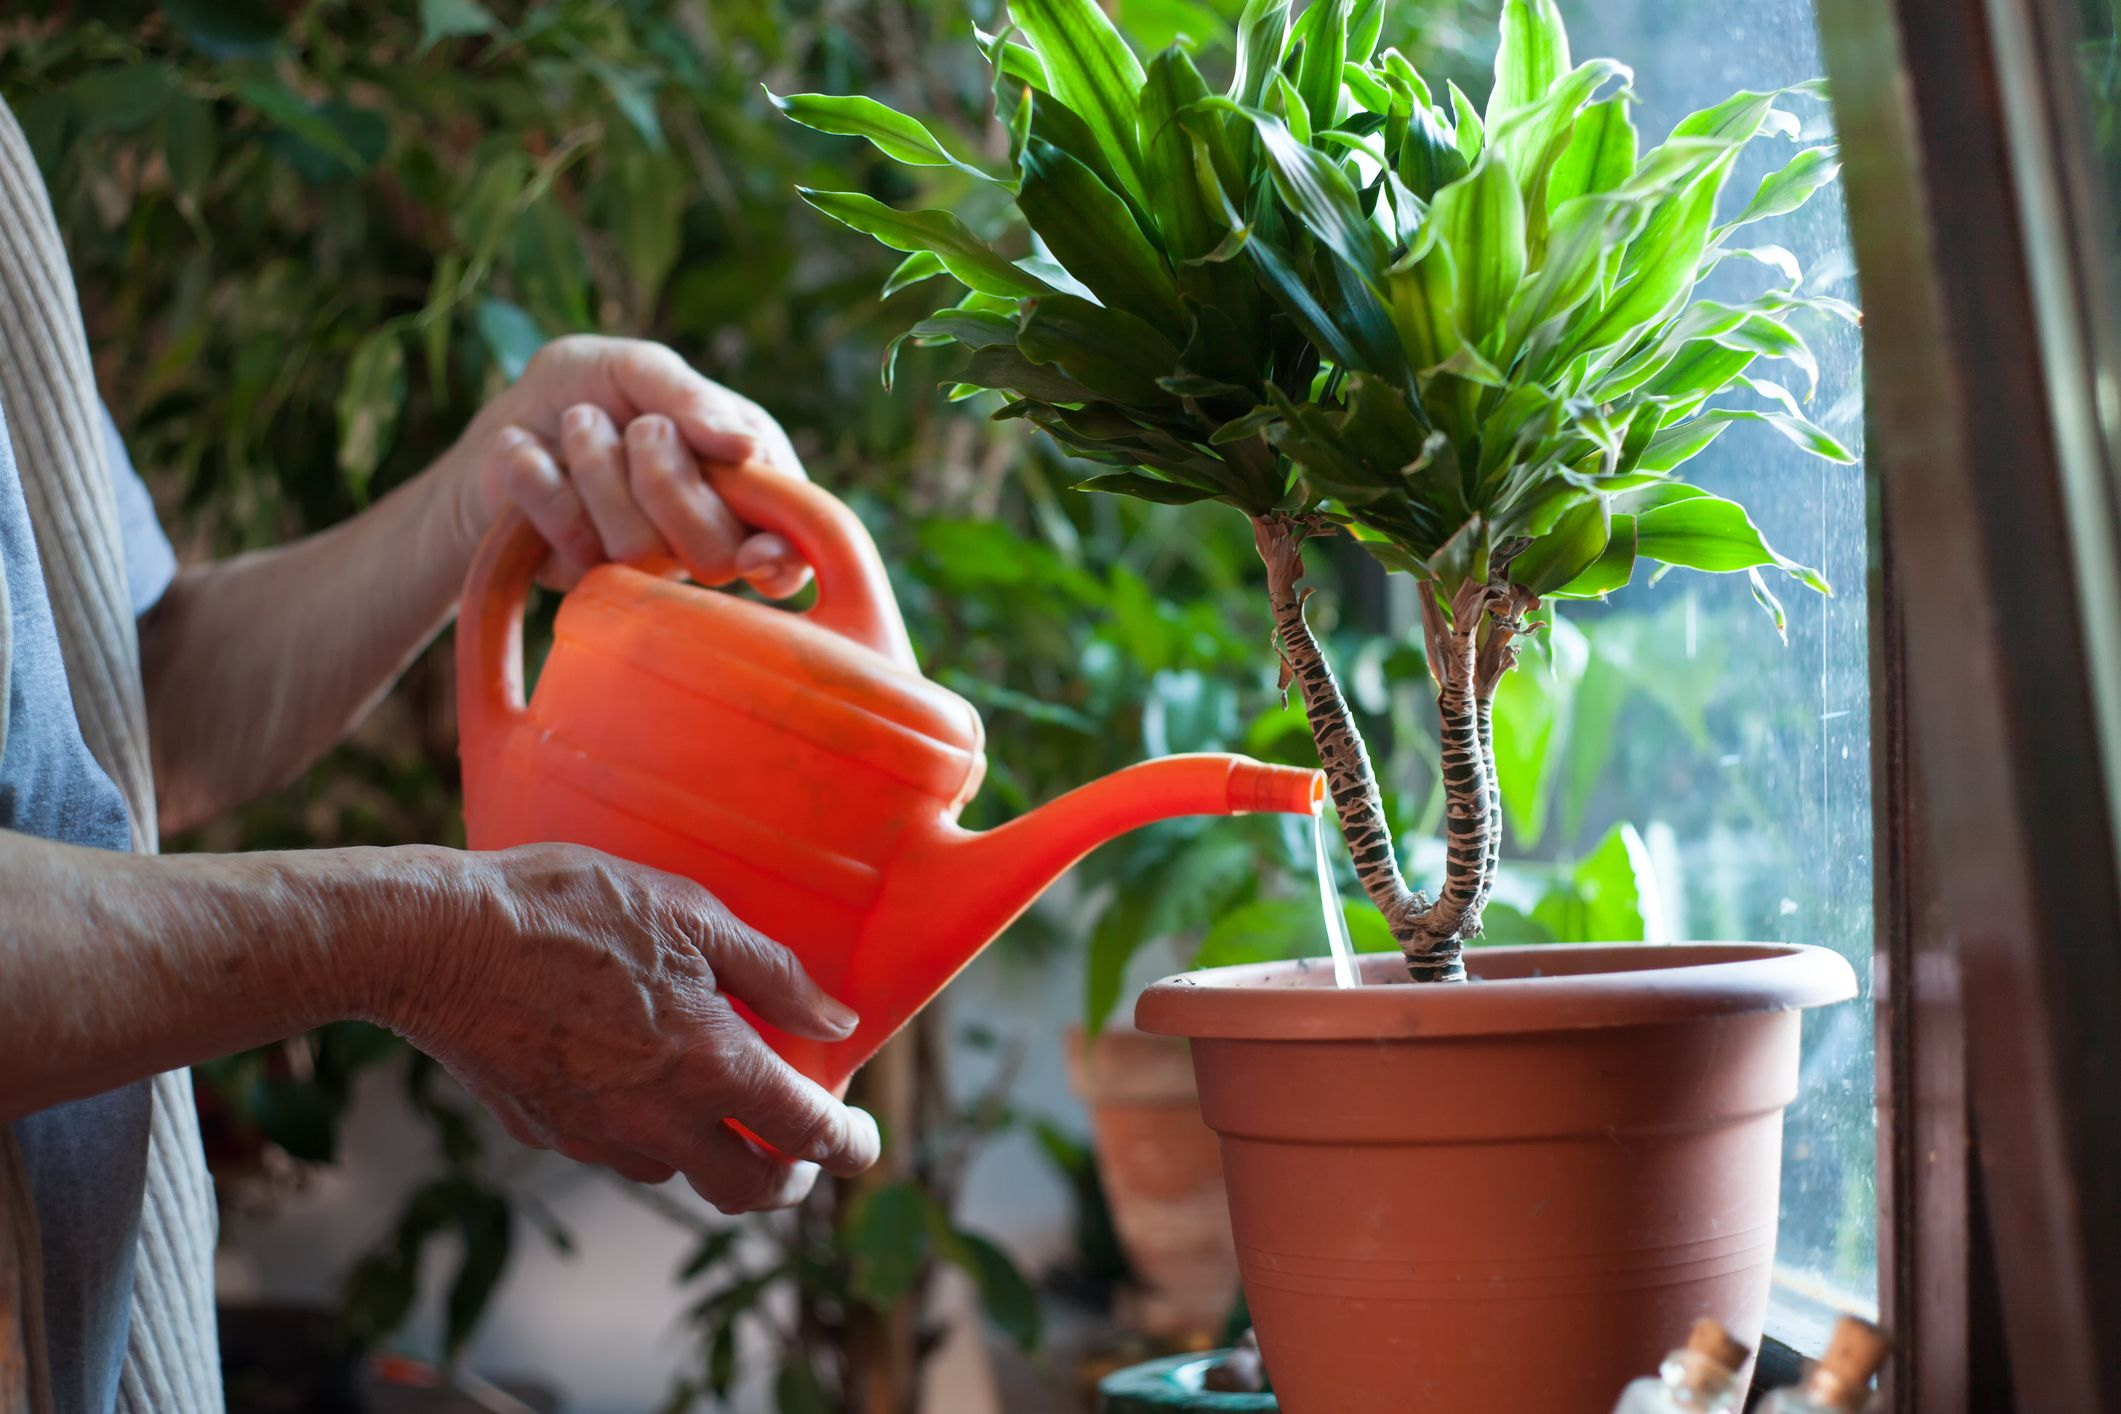 Husband Carries Out His Late Wife S Request To Water The Plants